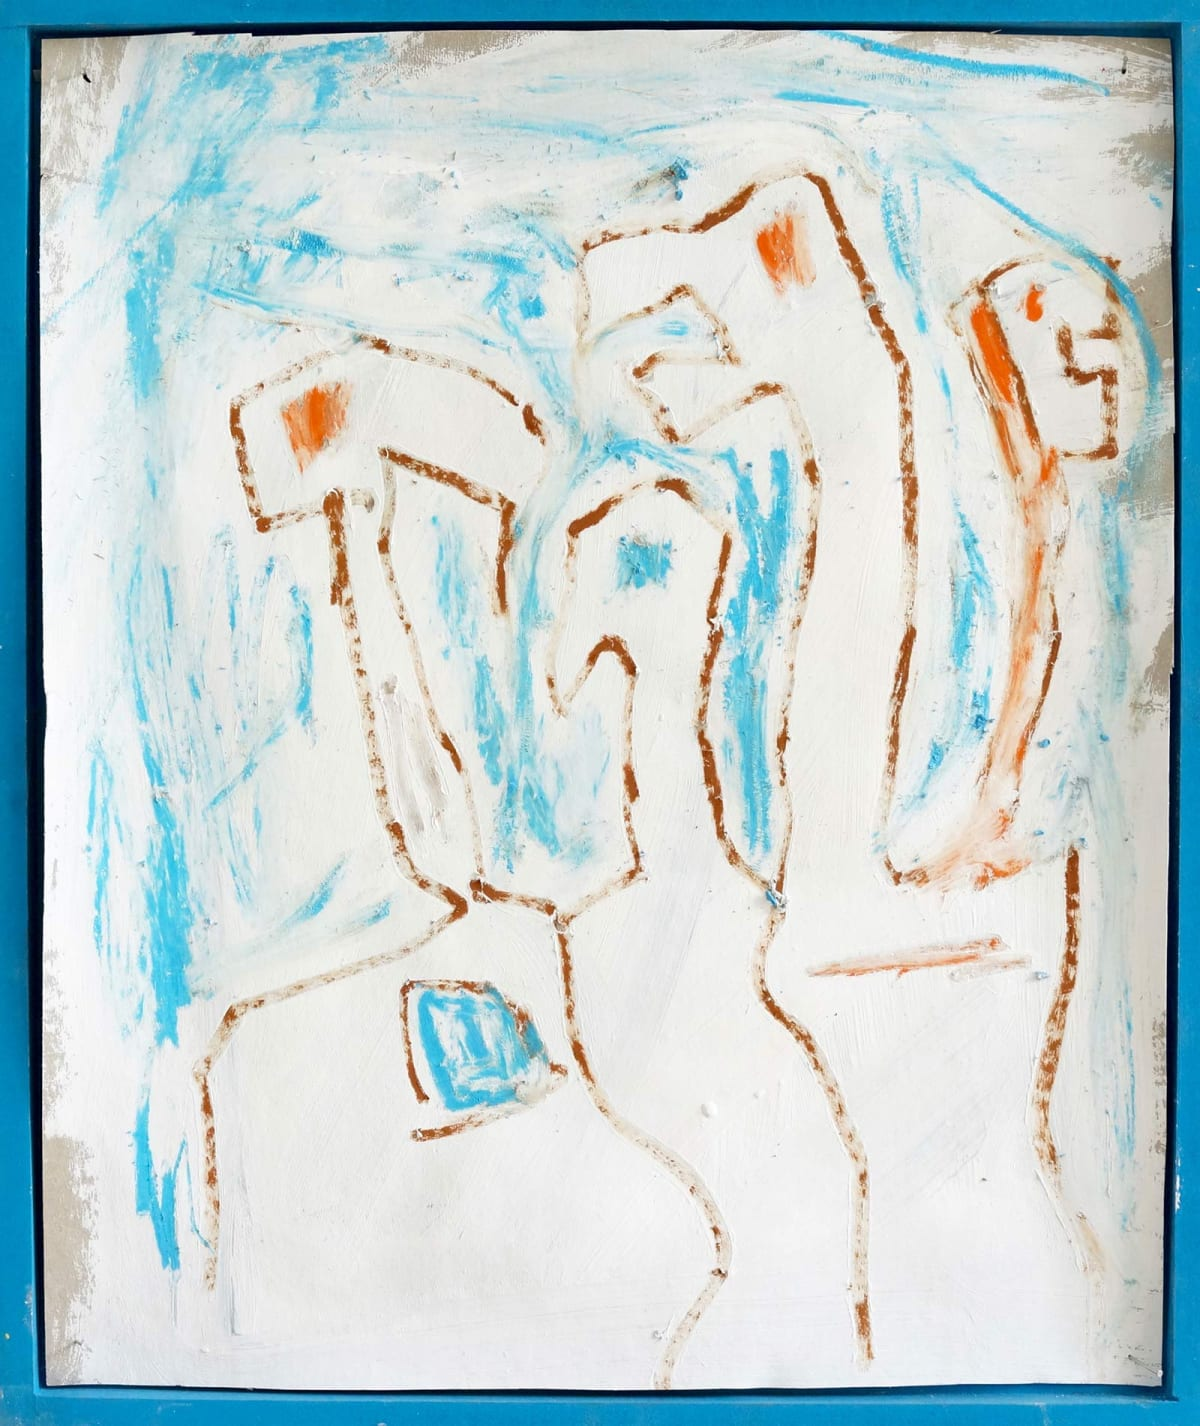 Talking heads, drawing and painting in blue, white, birds, artwork by ernst koslitsch online viewing room,